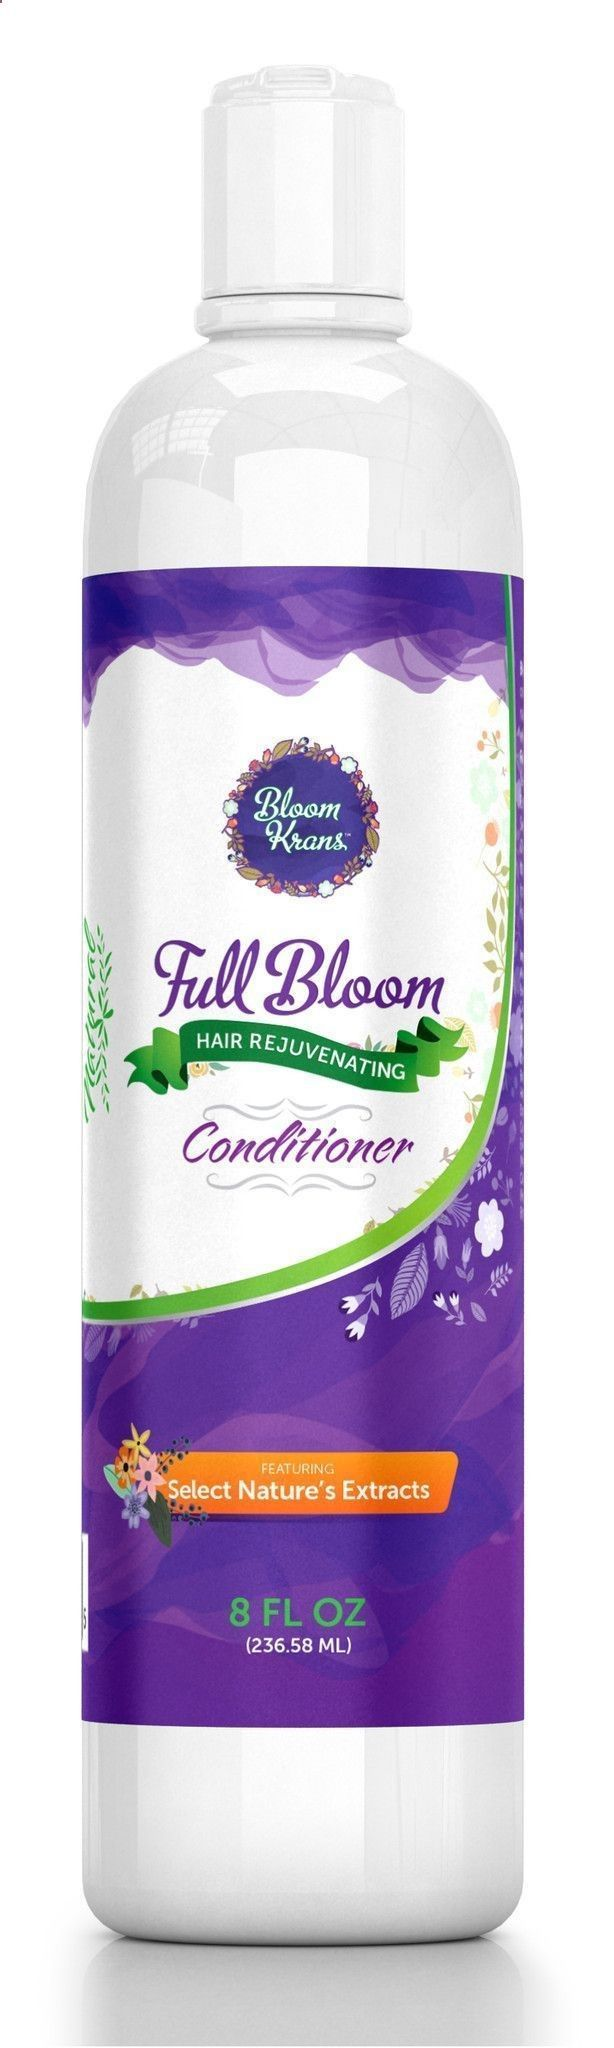 Bloom Krans Full Bloom Hair Loss Conditioner - Hair Growth Conditioner Help- Natural Alopecia Treatment for Women SLS Free Conditioner - Coconut Oil for Hair Growth (Pairs w/ Hair Loss Shampoo  Hair Loss Vitamins) #alopeciatreatment